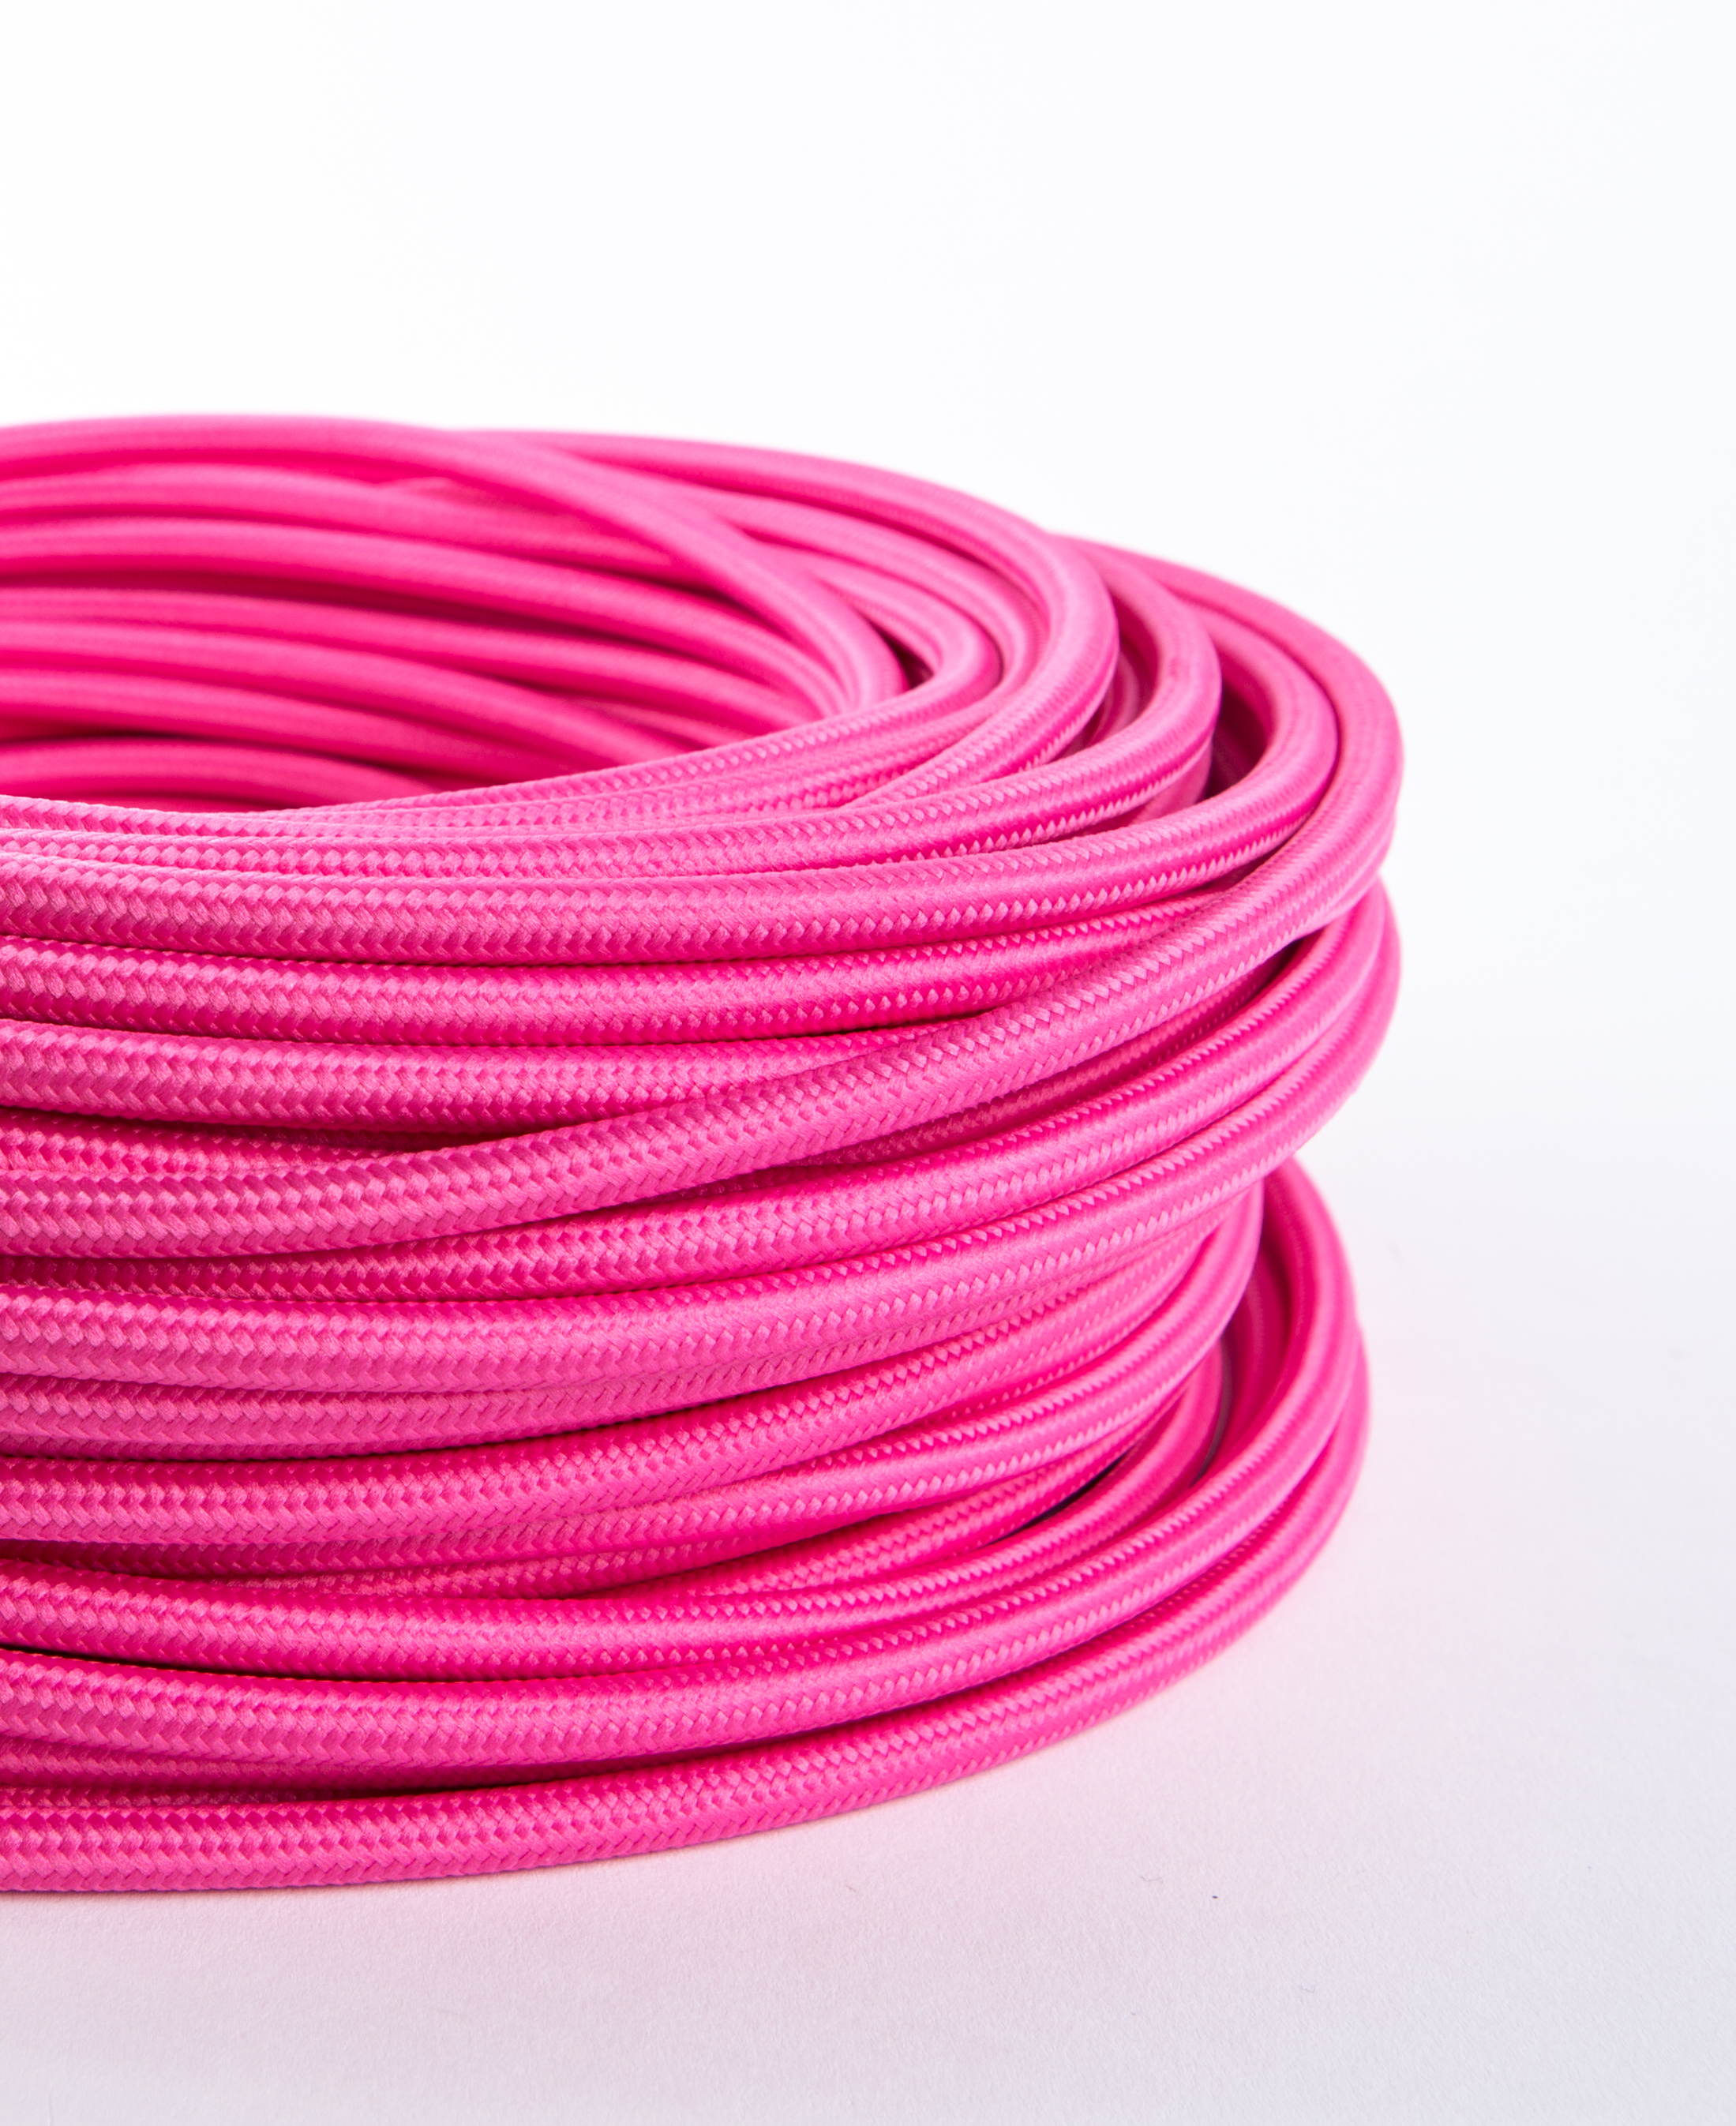 Pink Fabric Cable for Lighting 8 Amp 3 Core CE Certified